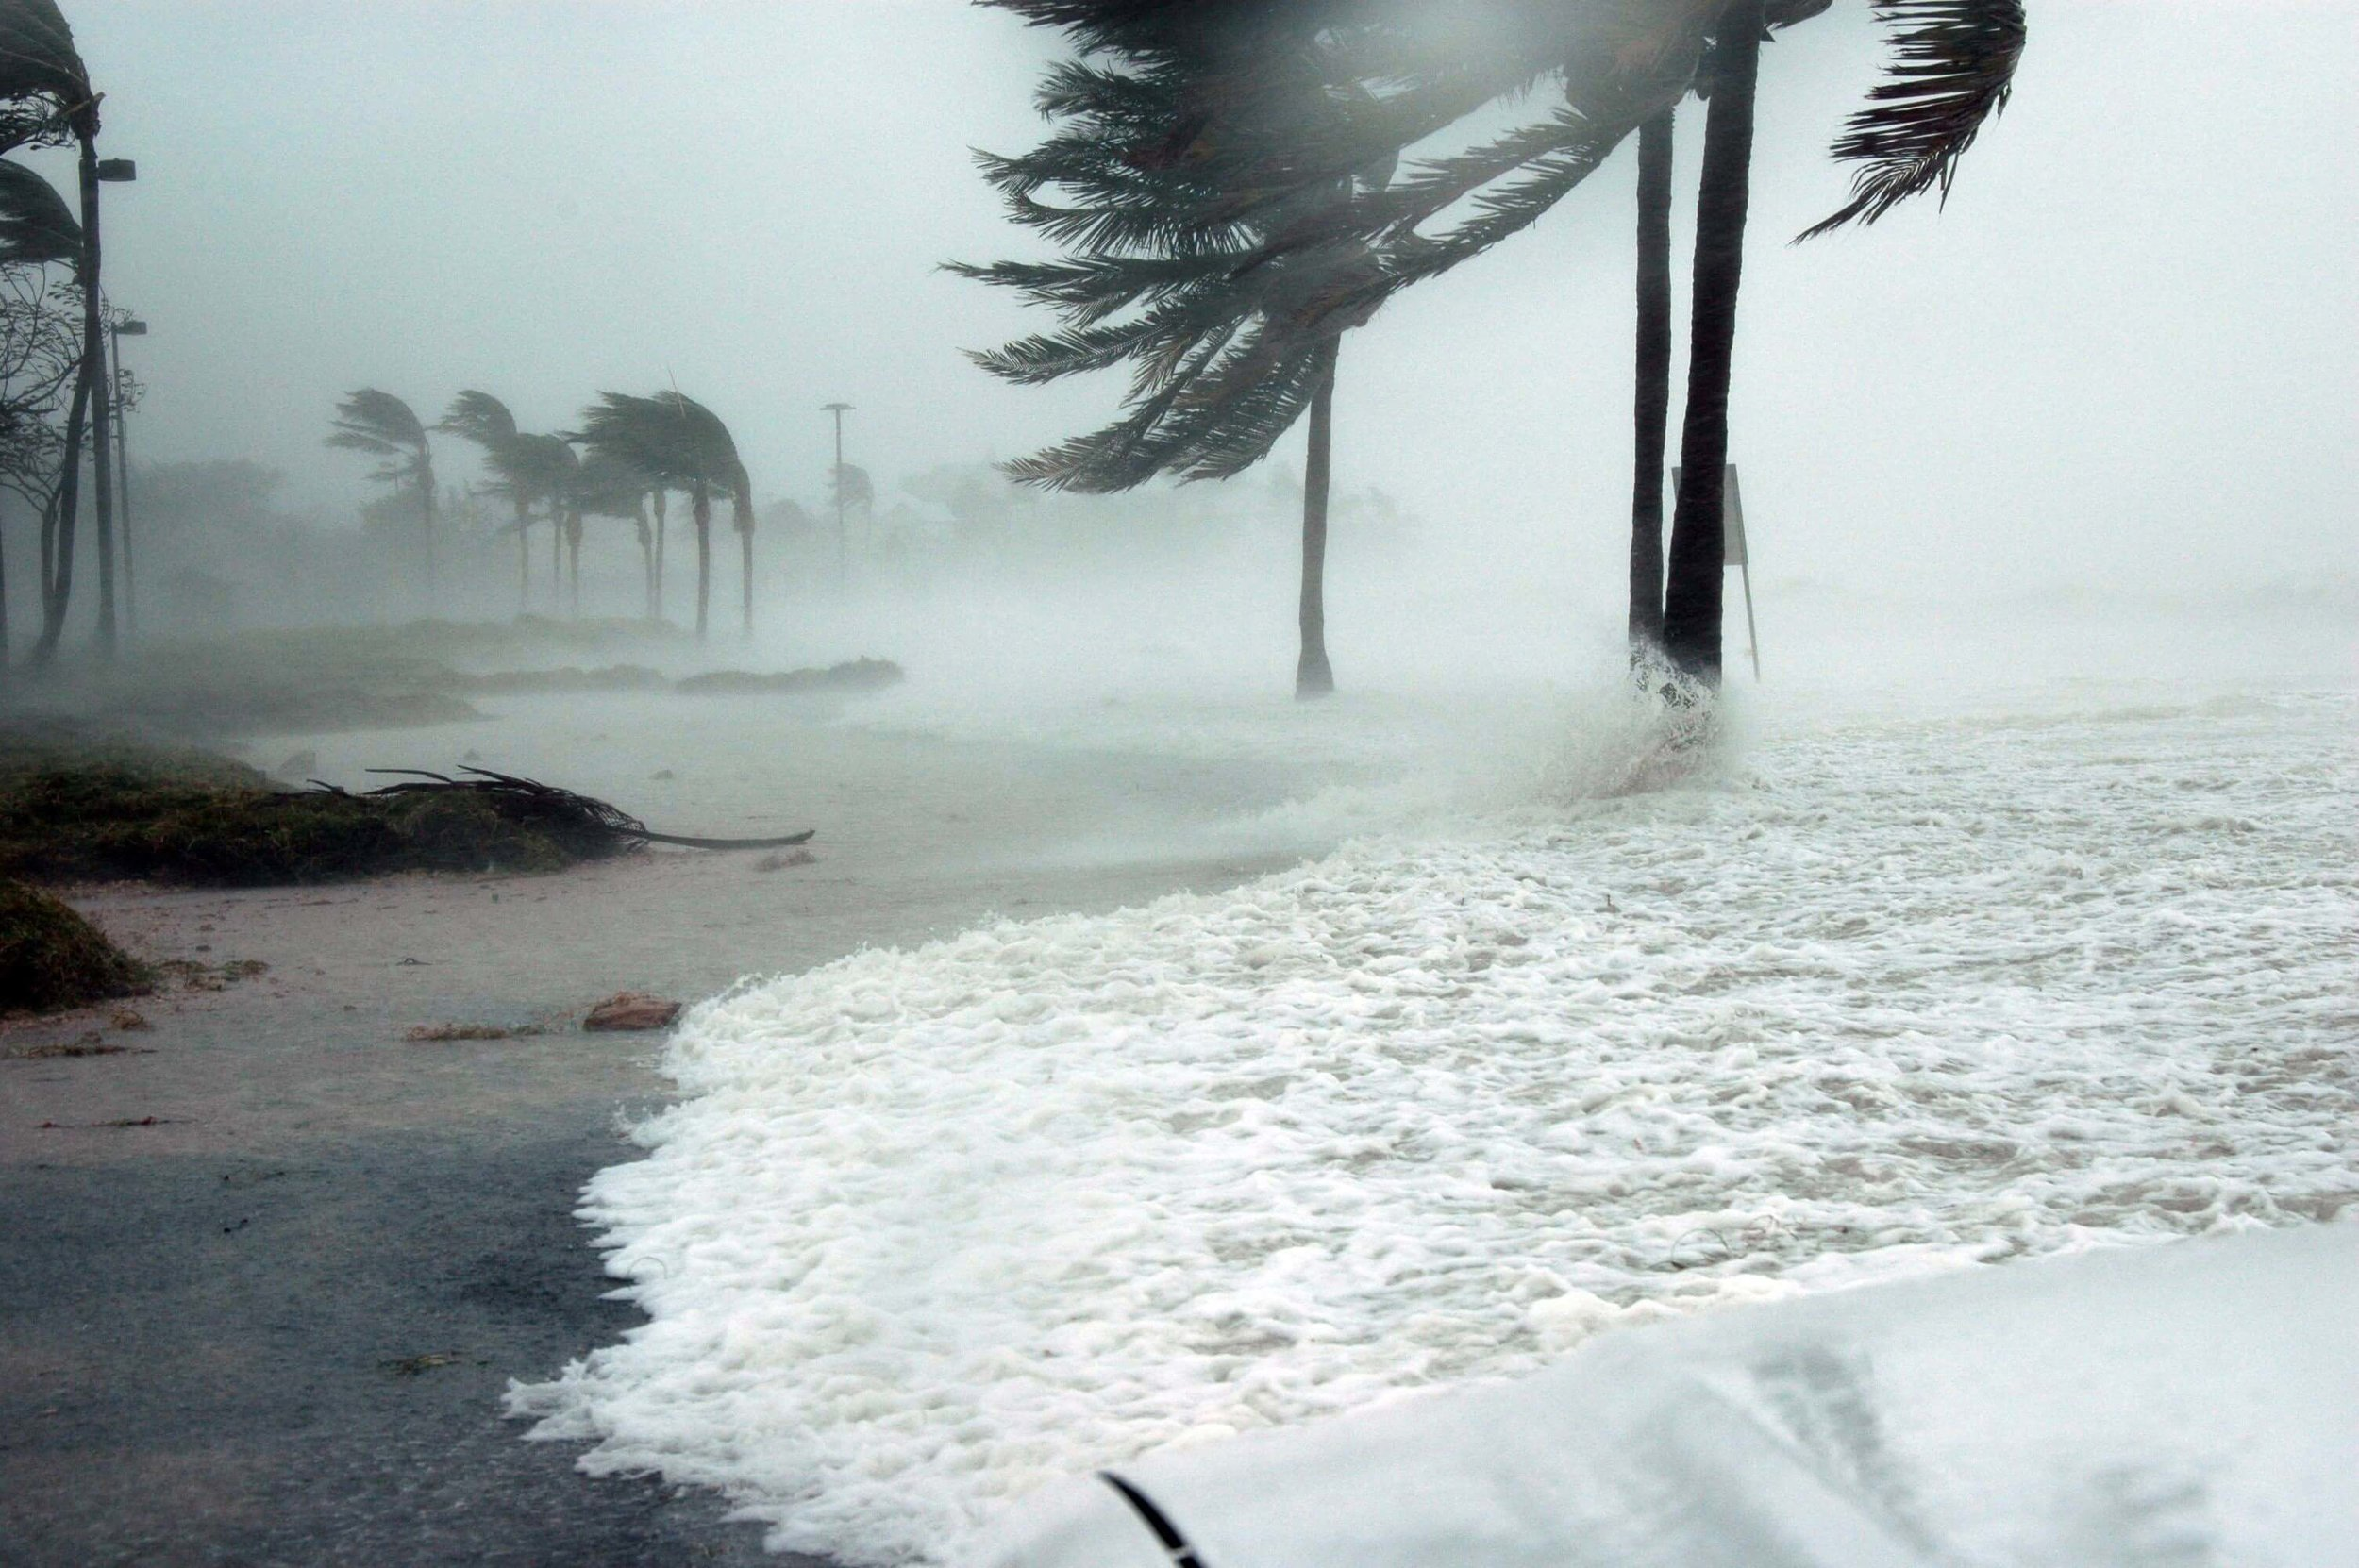 hurricane-making-landfall-at-key-west copy.jpg